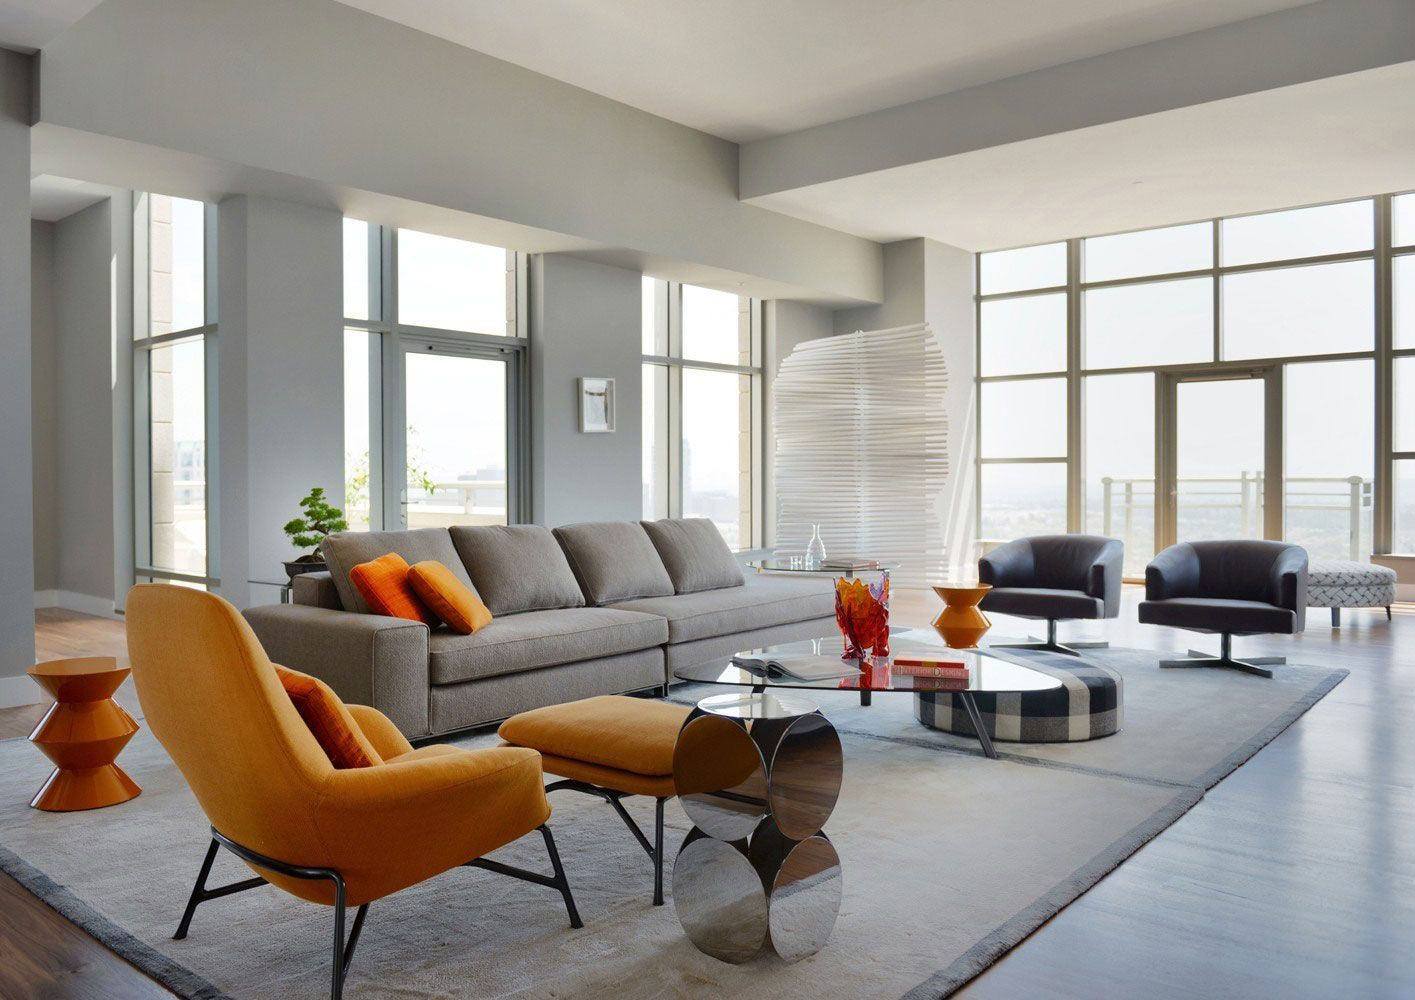 Woonkamer zwolle nibourg for Living room zwolle